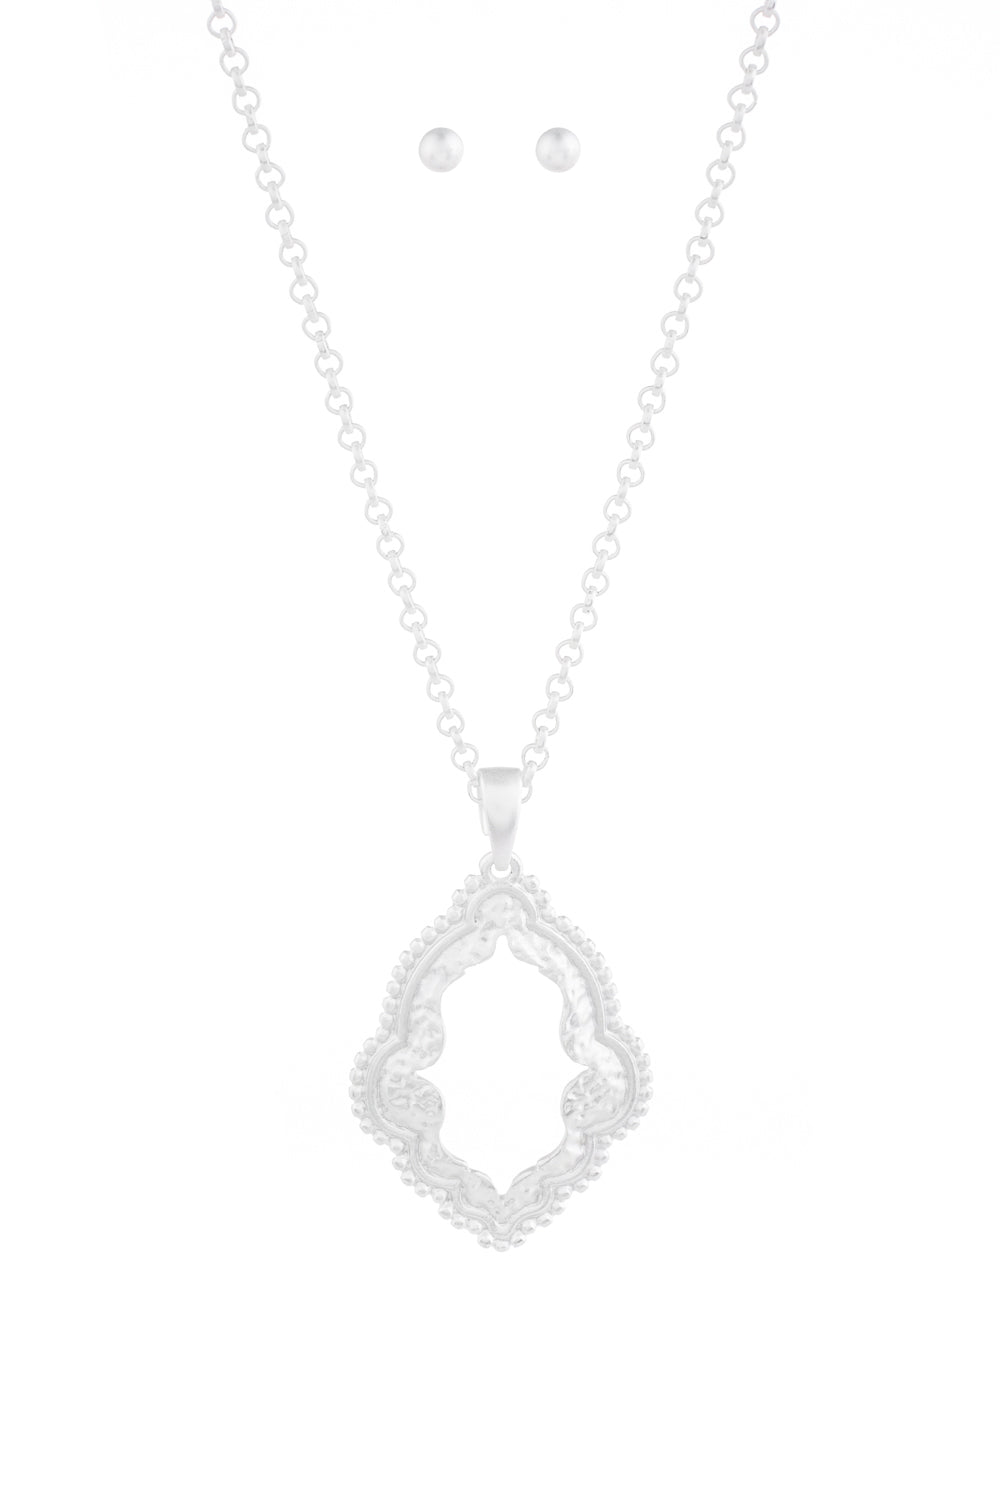 Type 2 Picturesque Necklace Set